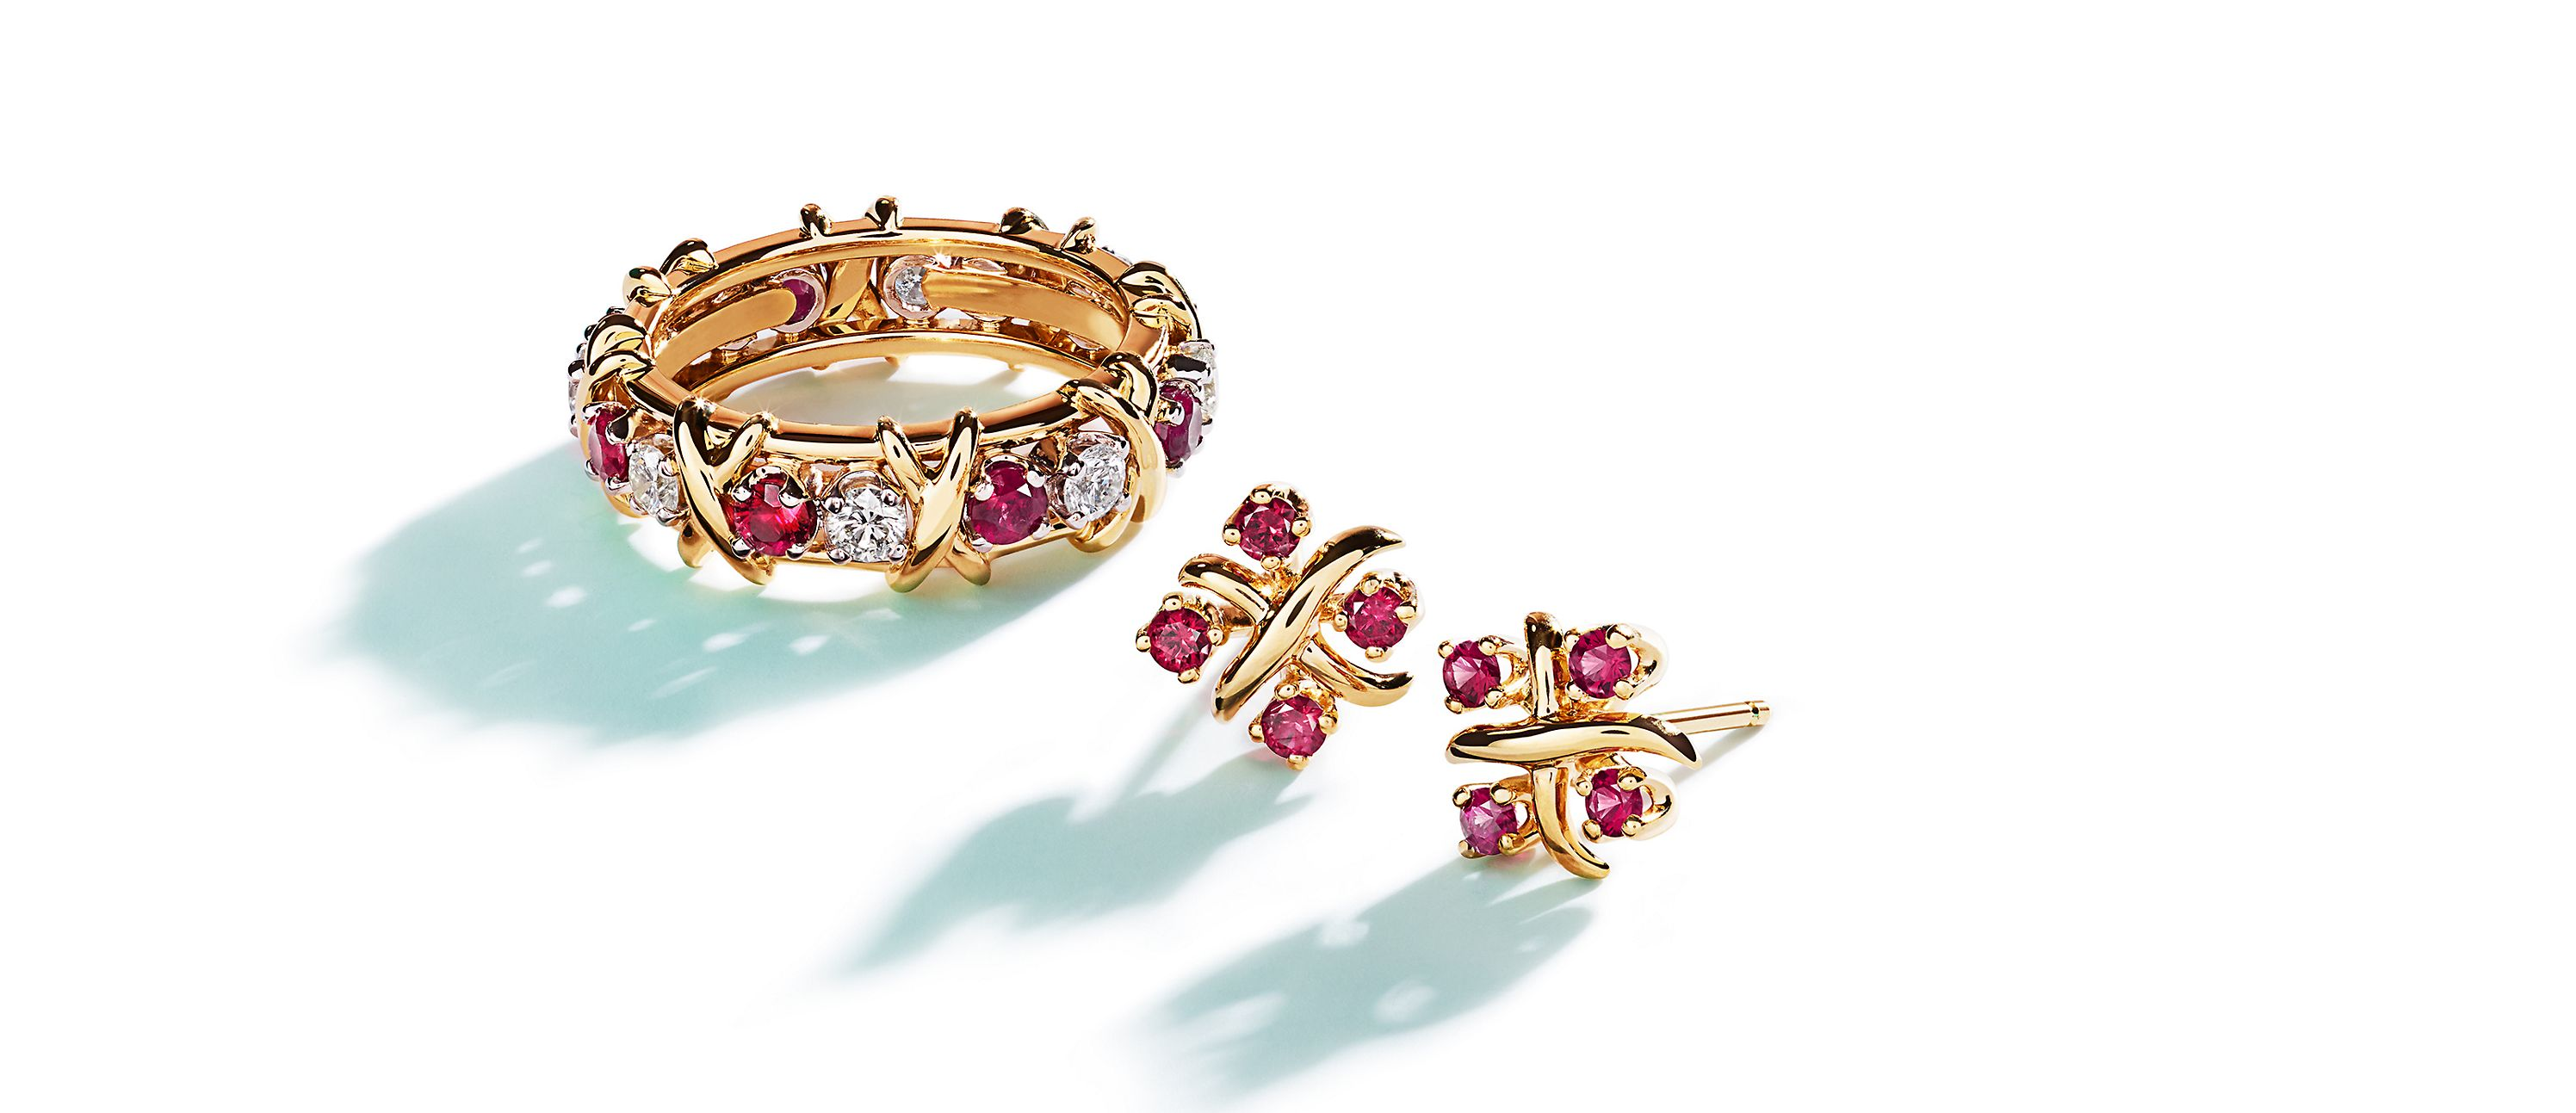 Browse Tiffany & Co. Ruby Jewelry